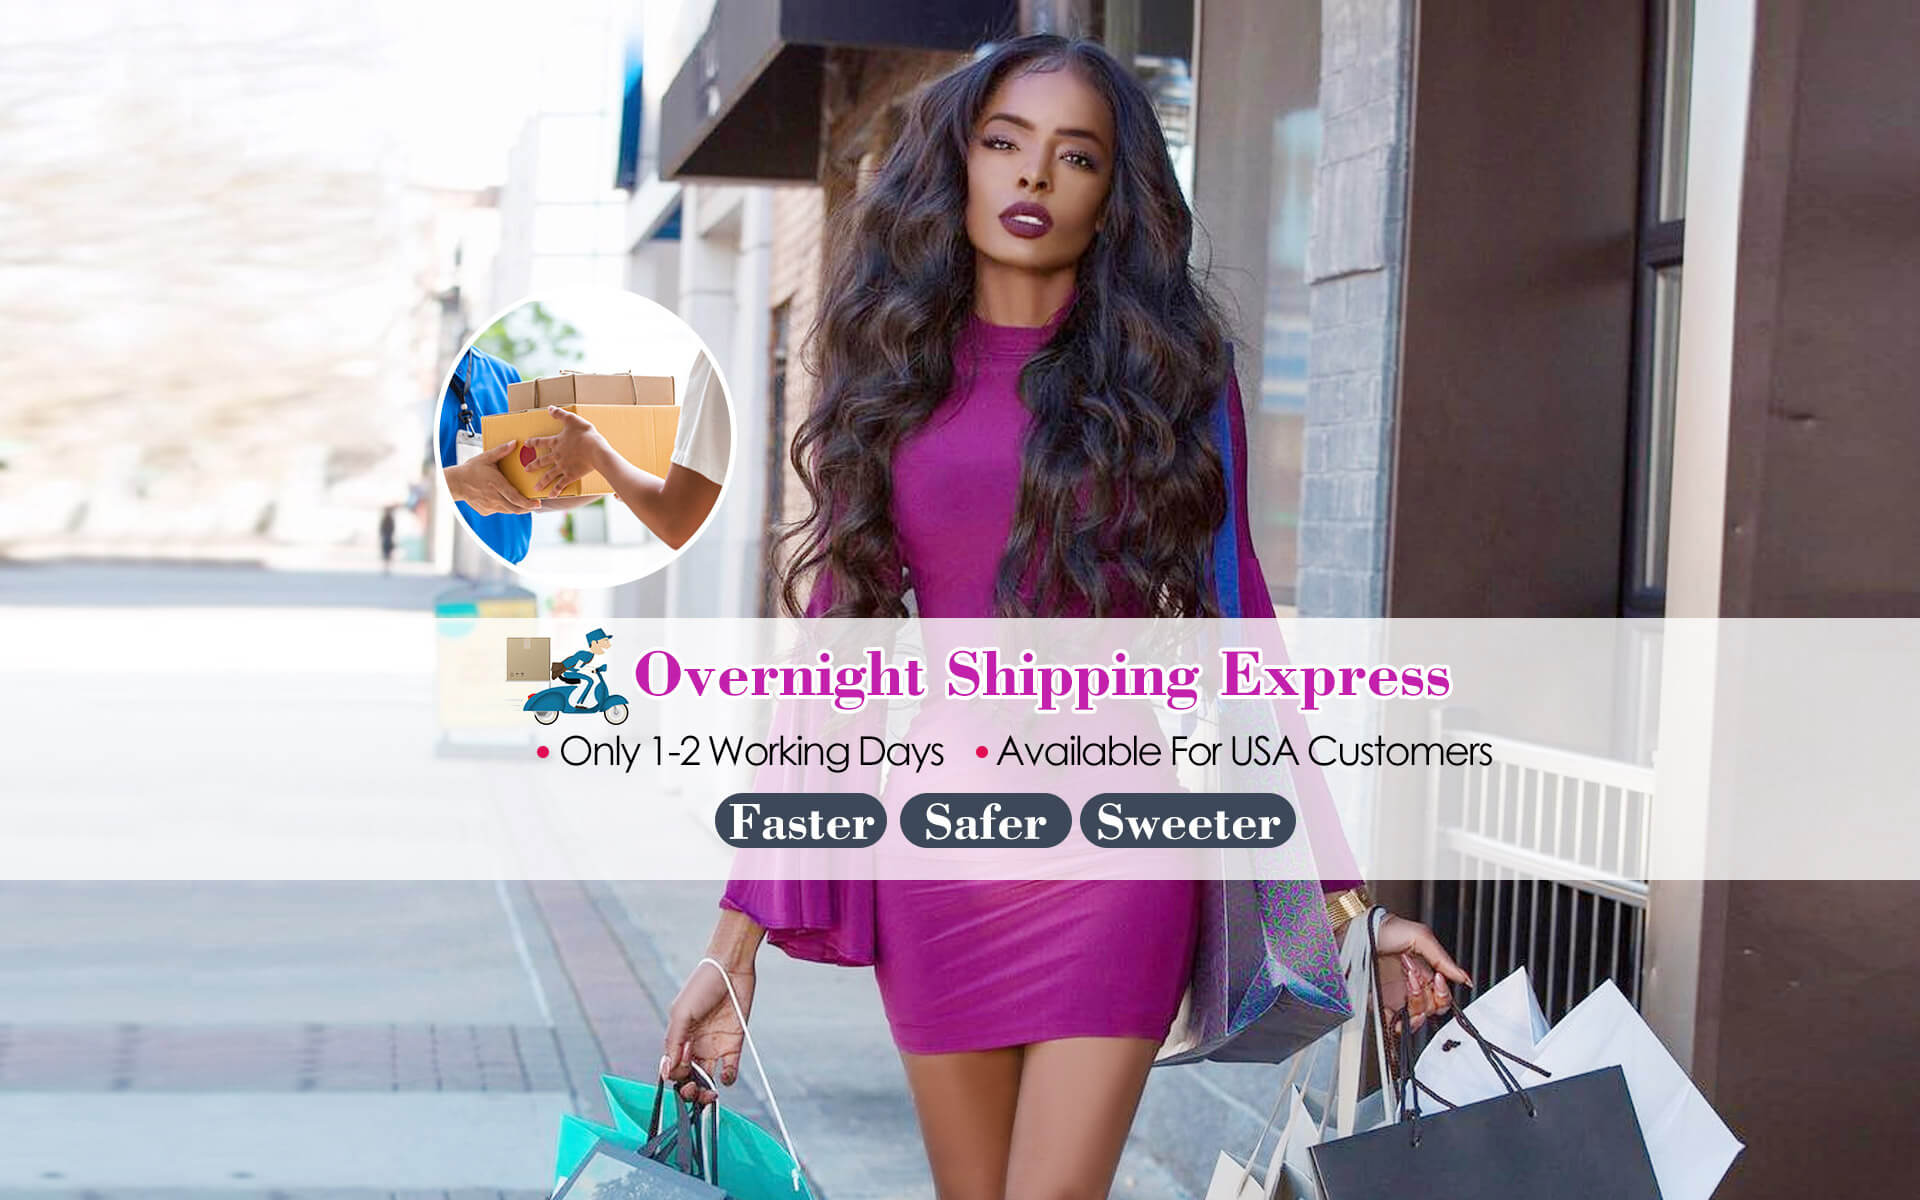 https://www.allovehair.com/collections/overnight-shipping